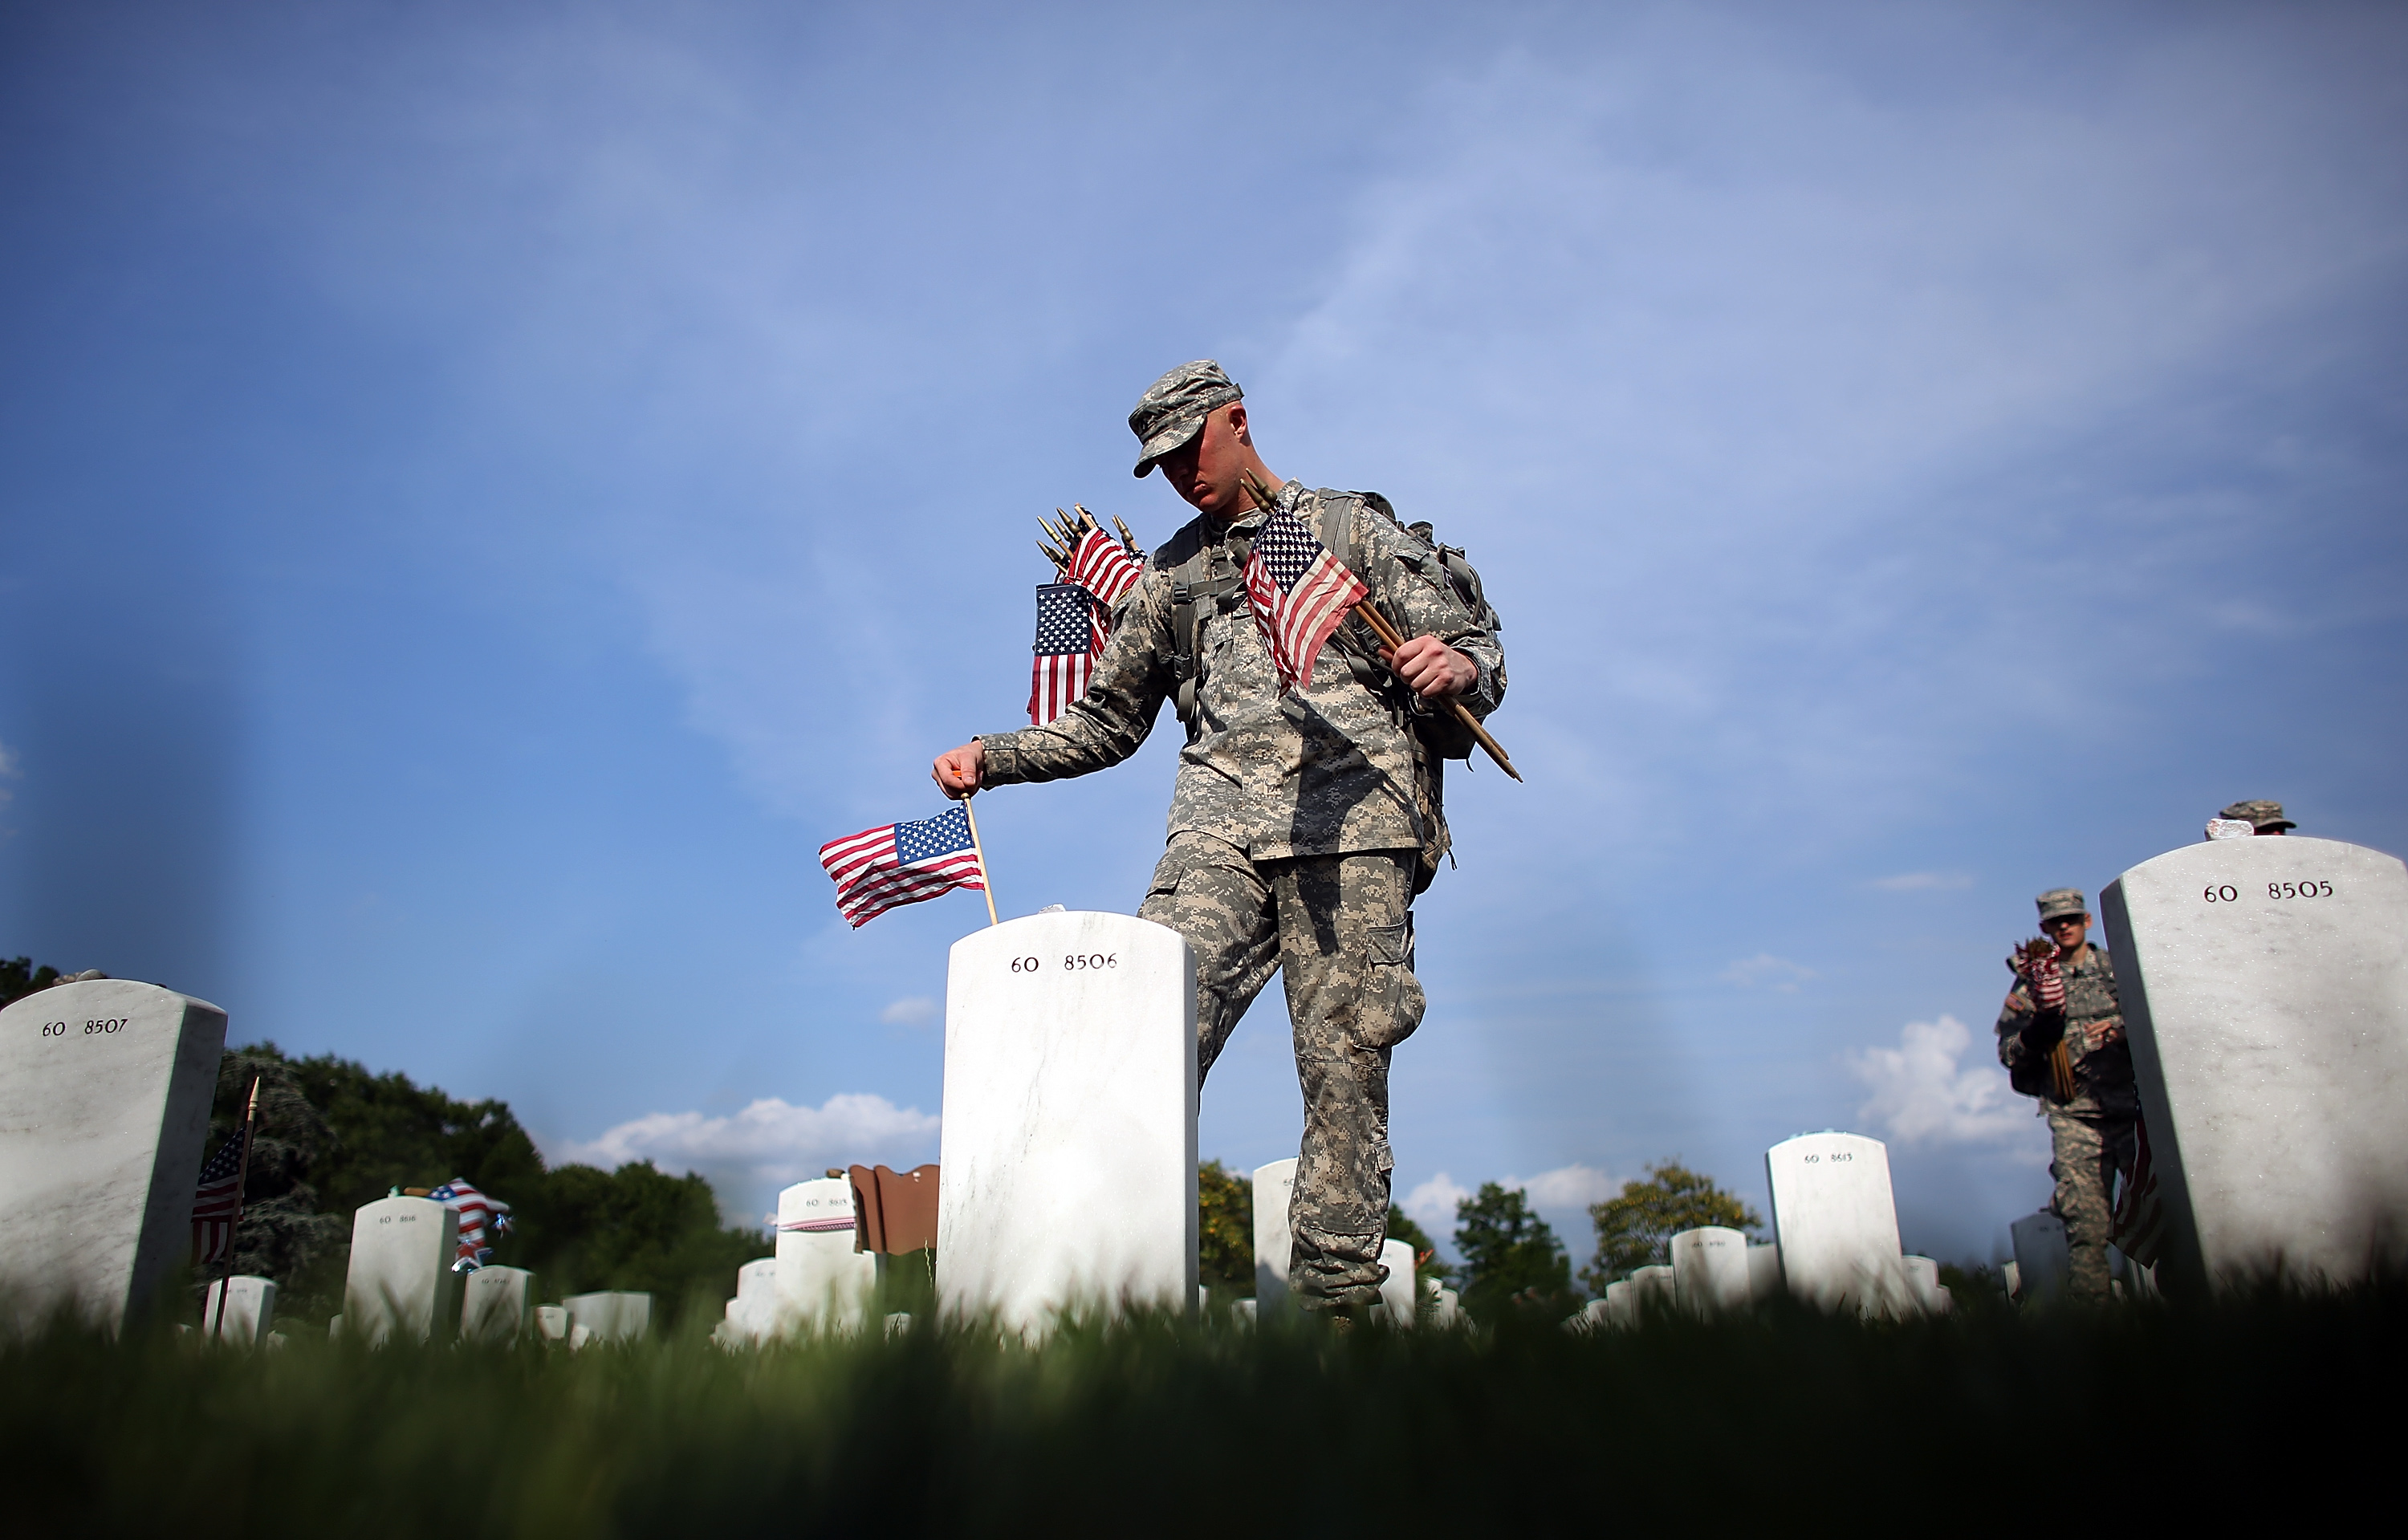 Members of the 3rd U.S. Infantry Regiment place American flags at the graves of U.S. soldiers buried in Section 60 at Arlington National Cemetery in preparation for Memorial Day May 24, 2012 in Arlington, Virginia. (Photo by Win McNamee/Getty Images)